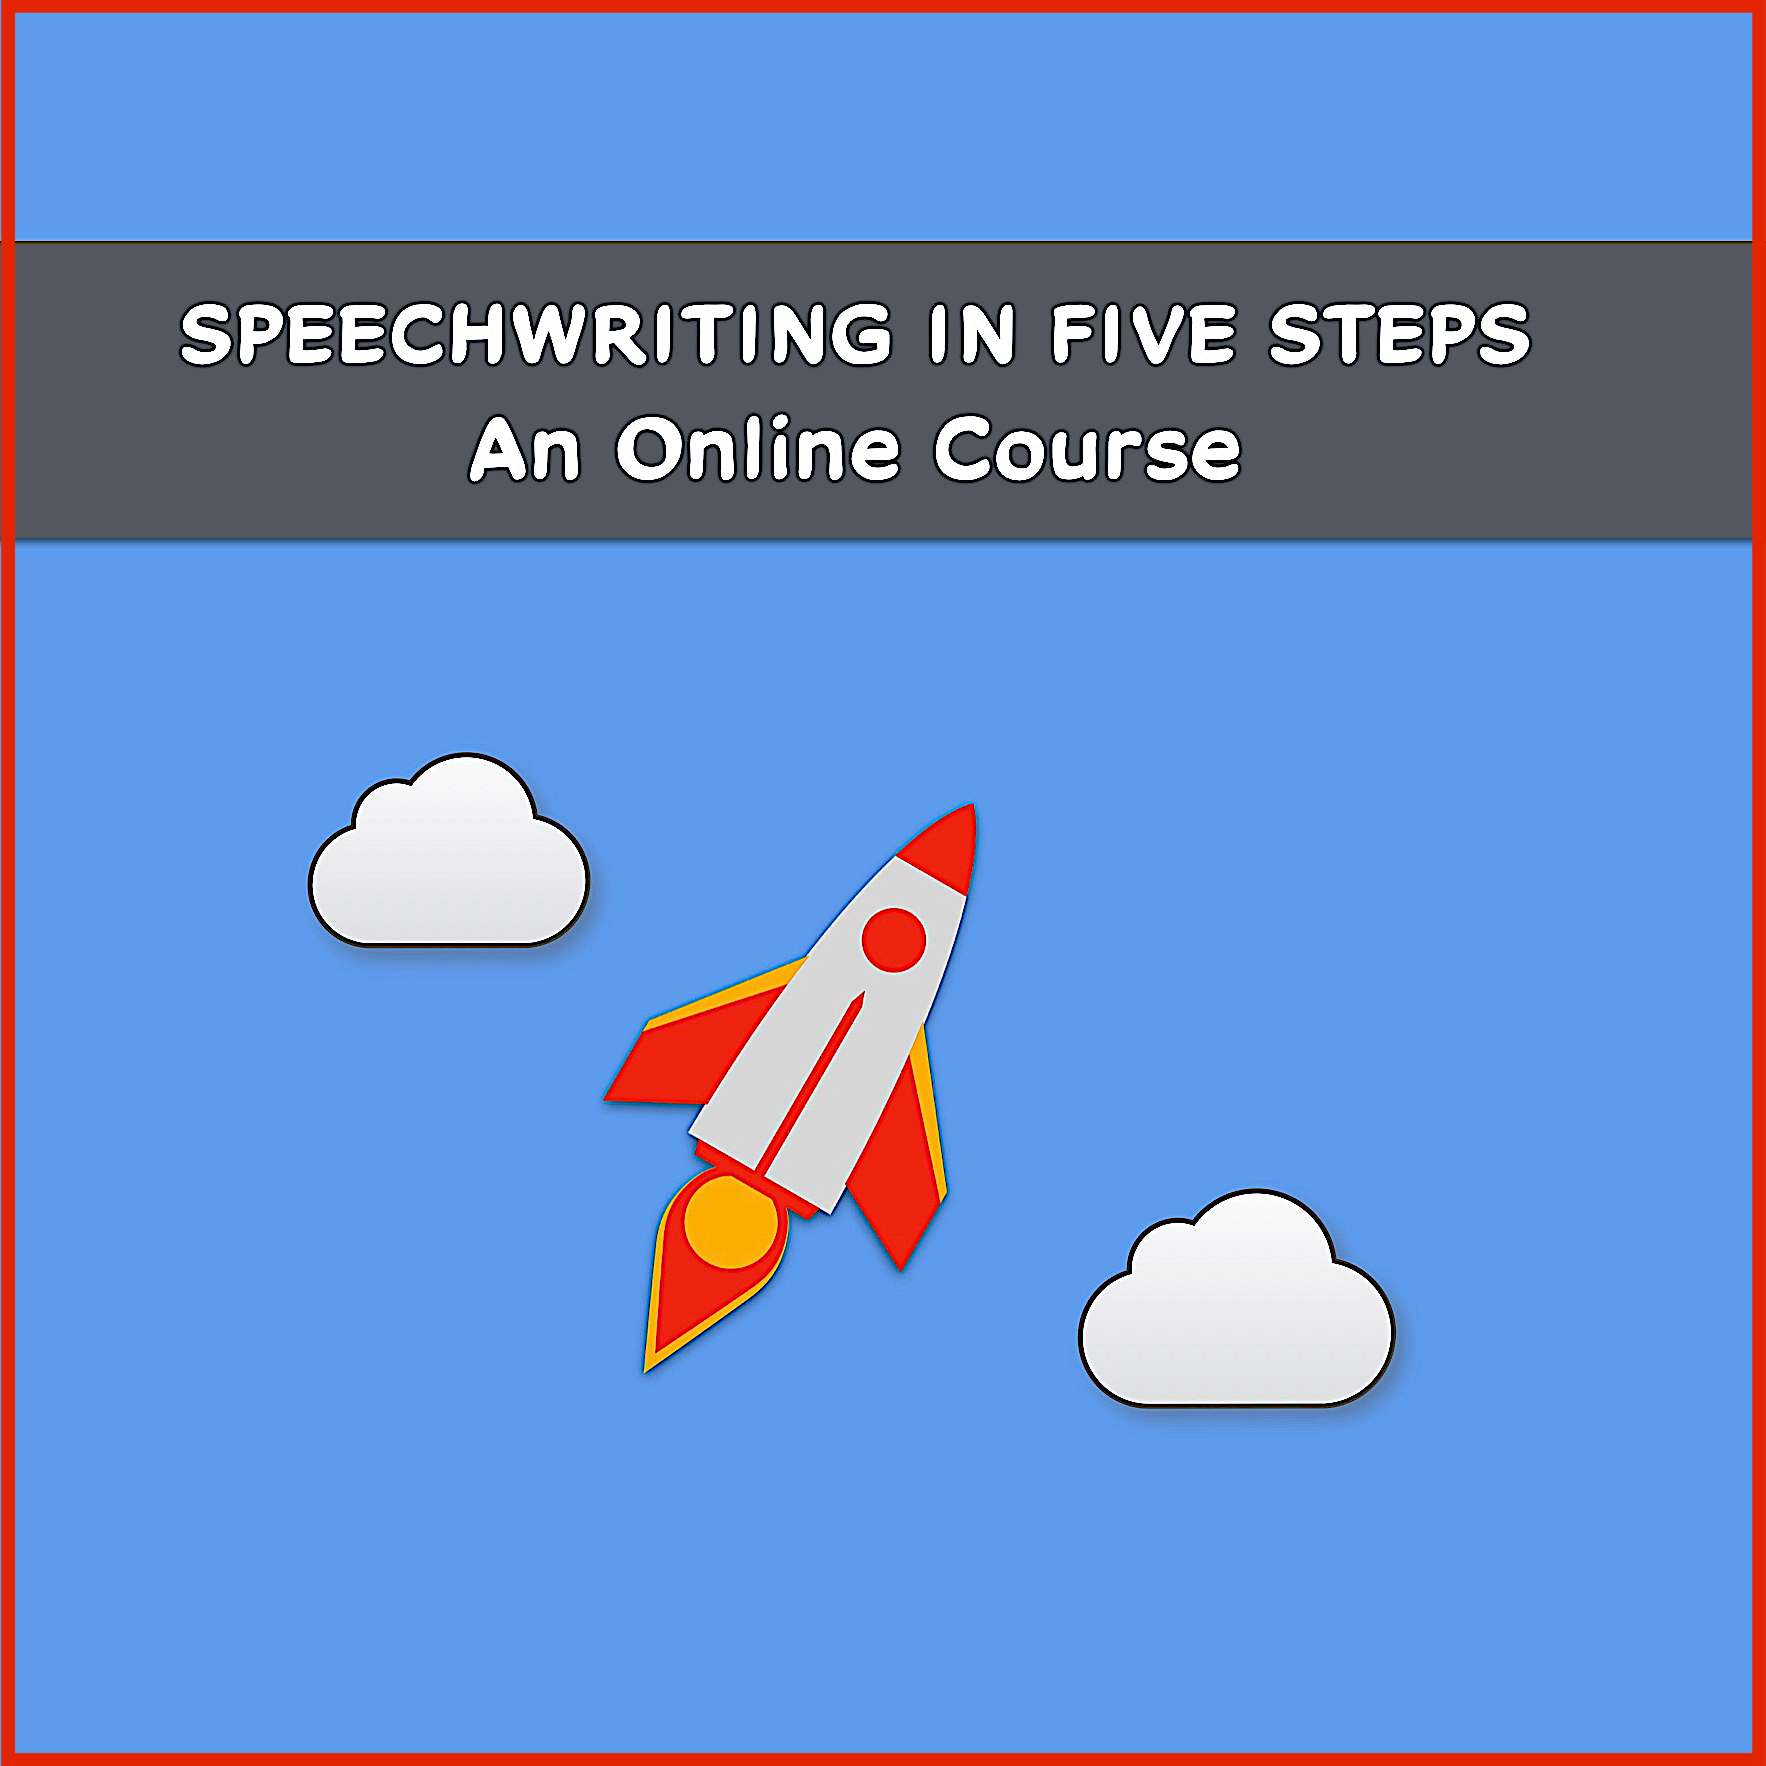 Speechwriting in Five Steps Online Course